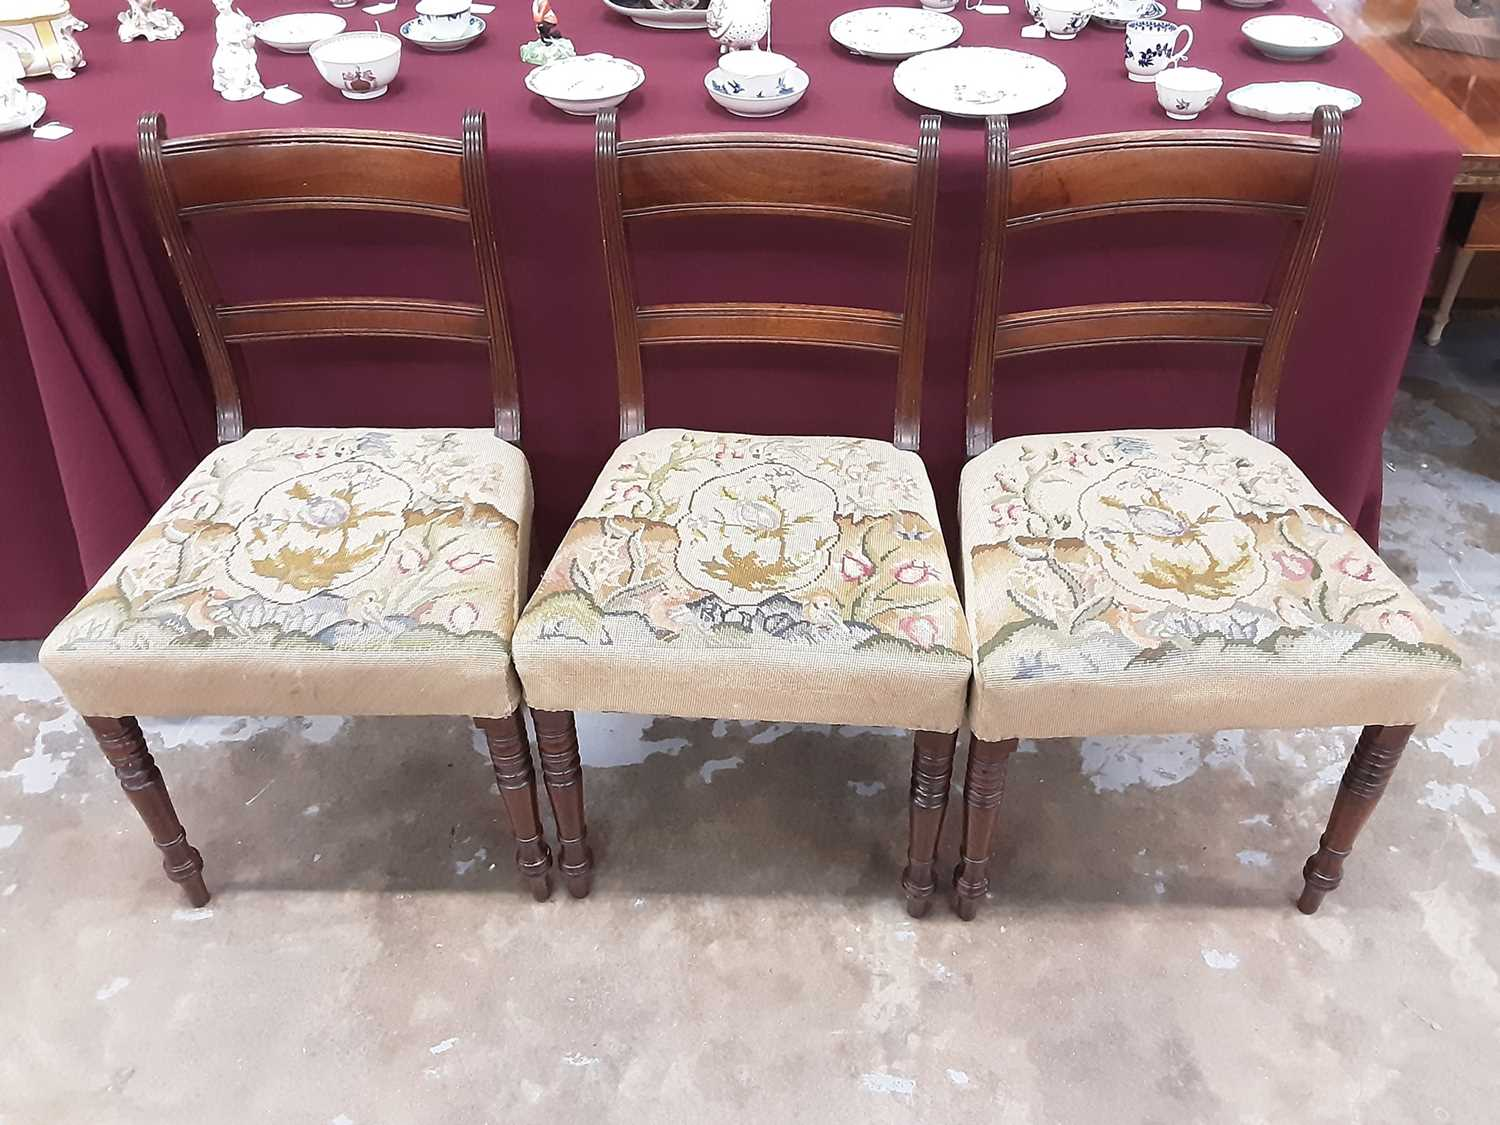 Set of eight Regency mahogany dining chairs, each with bar back and tapestry seat on ring turned leg - Image 3 of 3